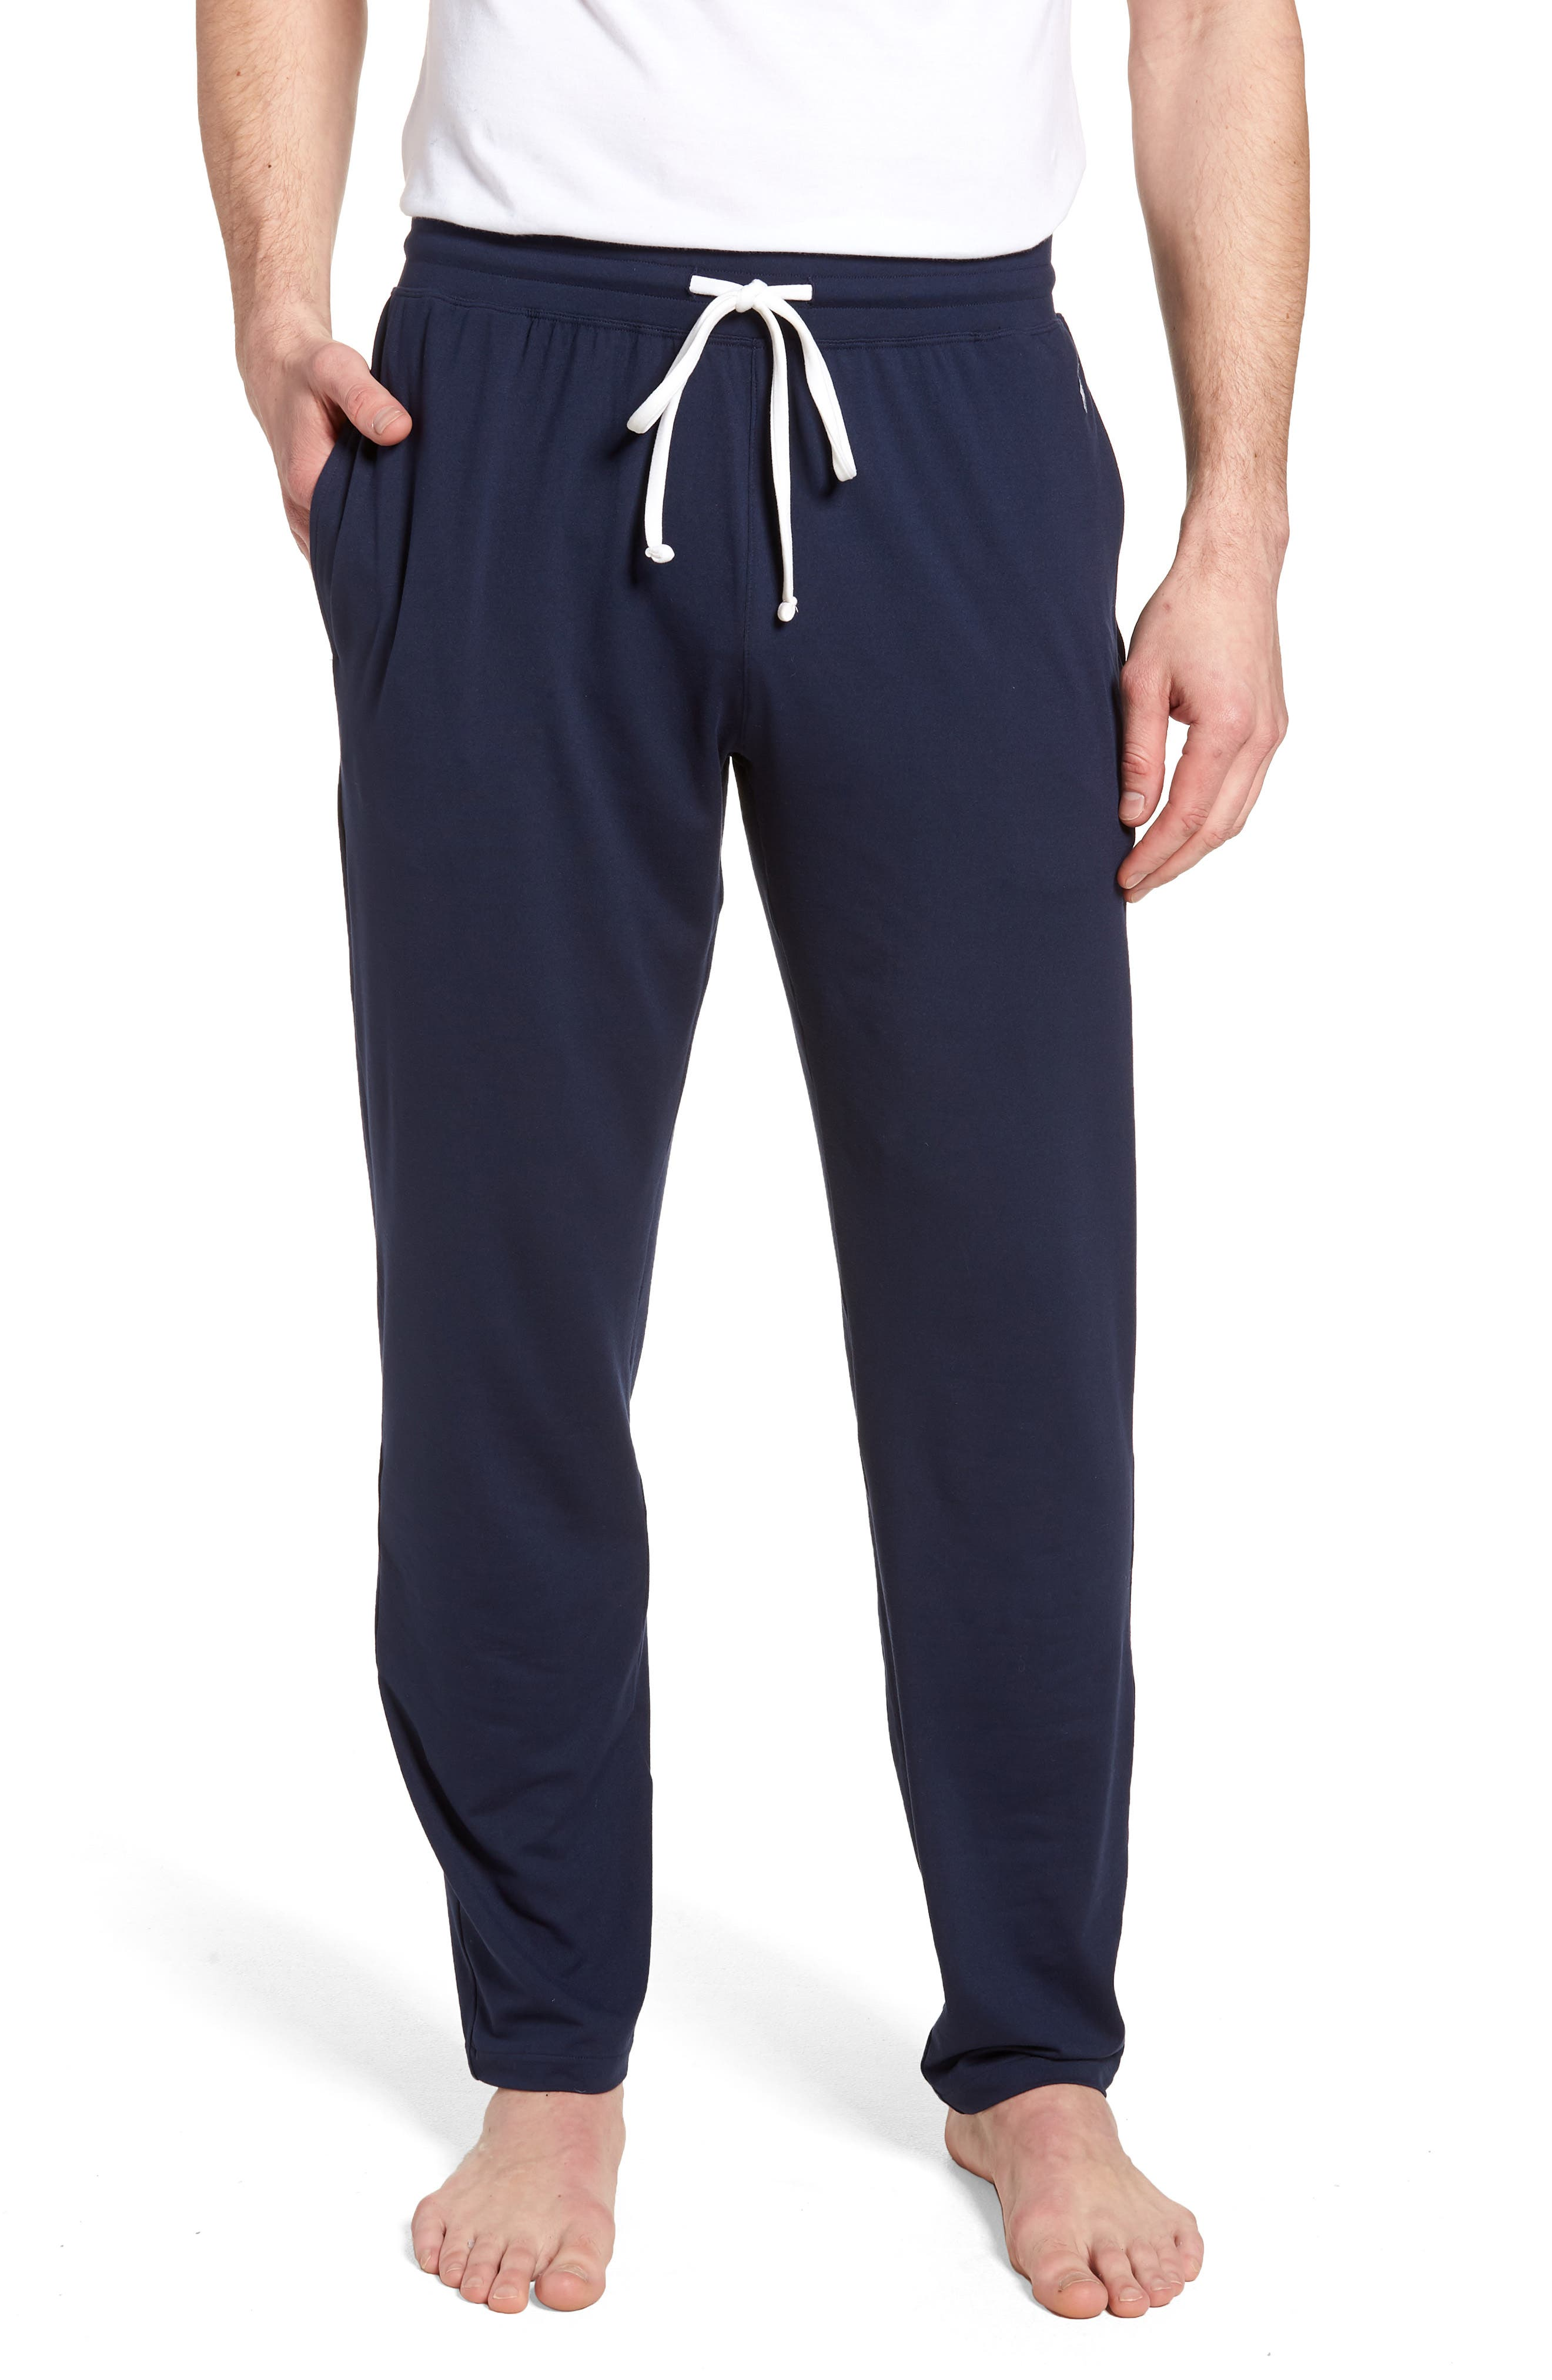 Therma Lounge Pants,                         Main,                         color, Cruise Navy/ Nevis